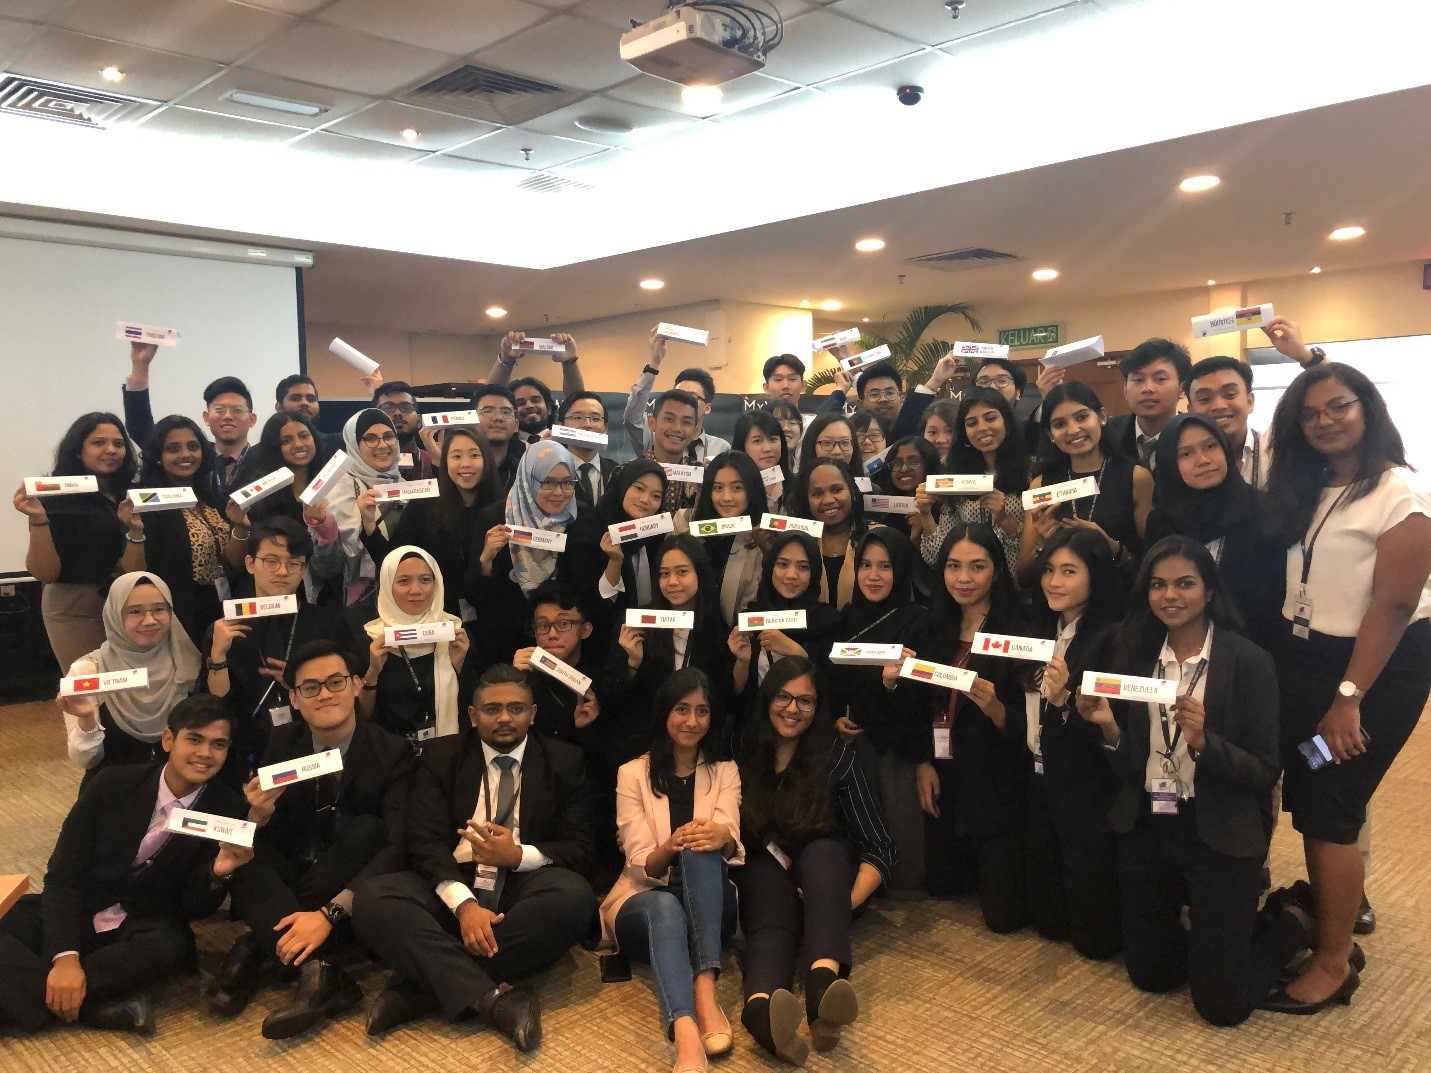 Written by Nur Nabila bt Nasharuddin, IMU Medical Student Related article: AMSA launched debut MyWHA